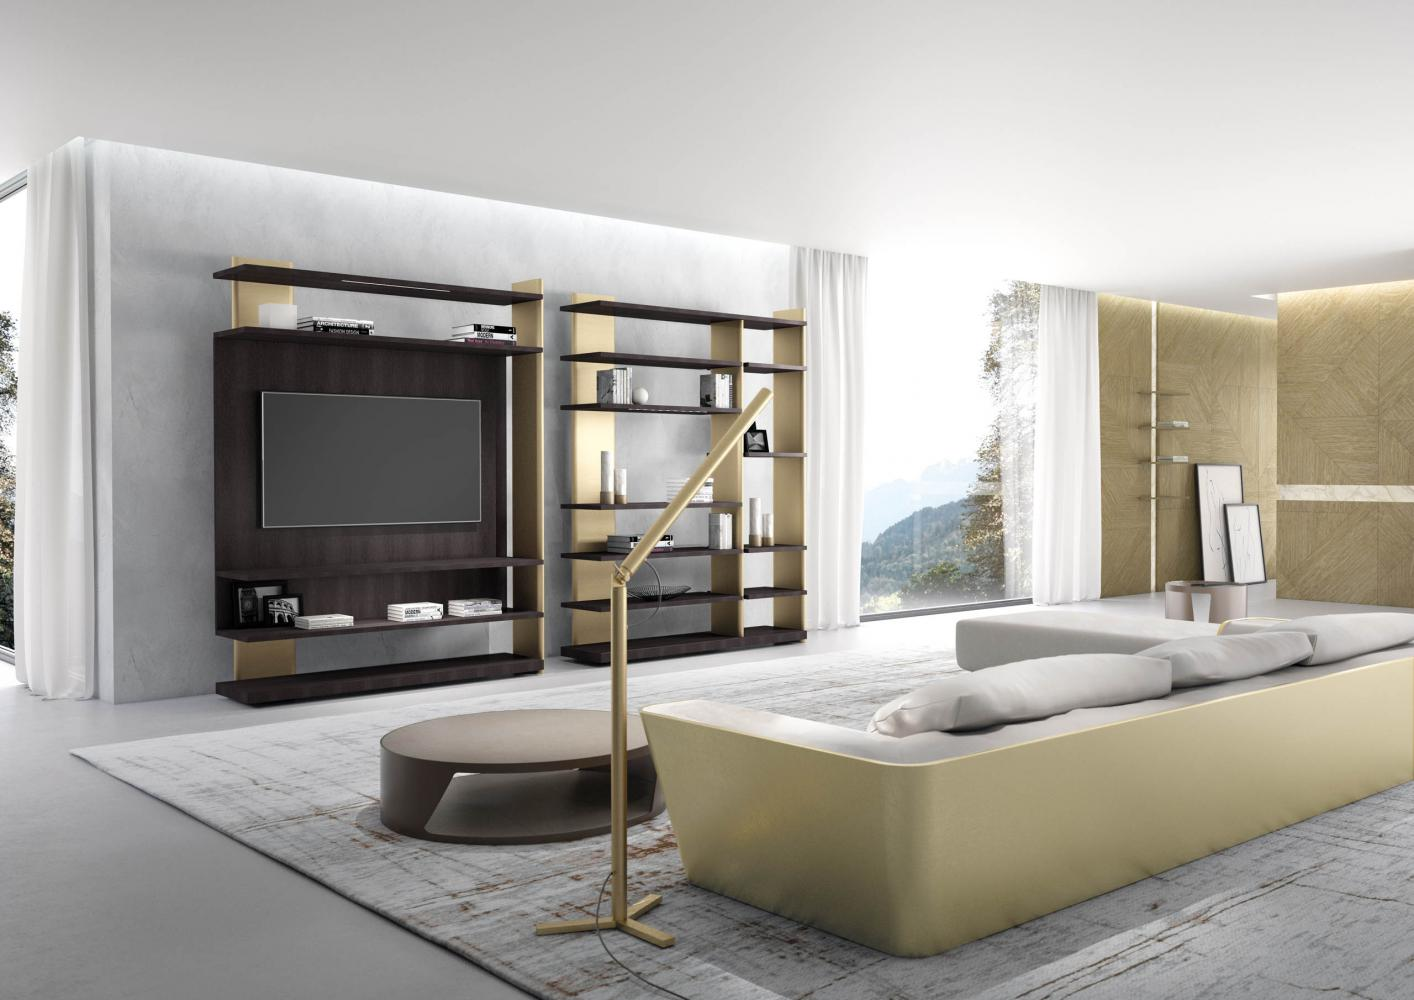 laurameroni outfit day system in wood for luxury livingroom interior design